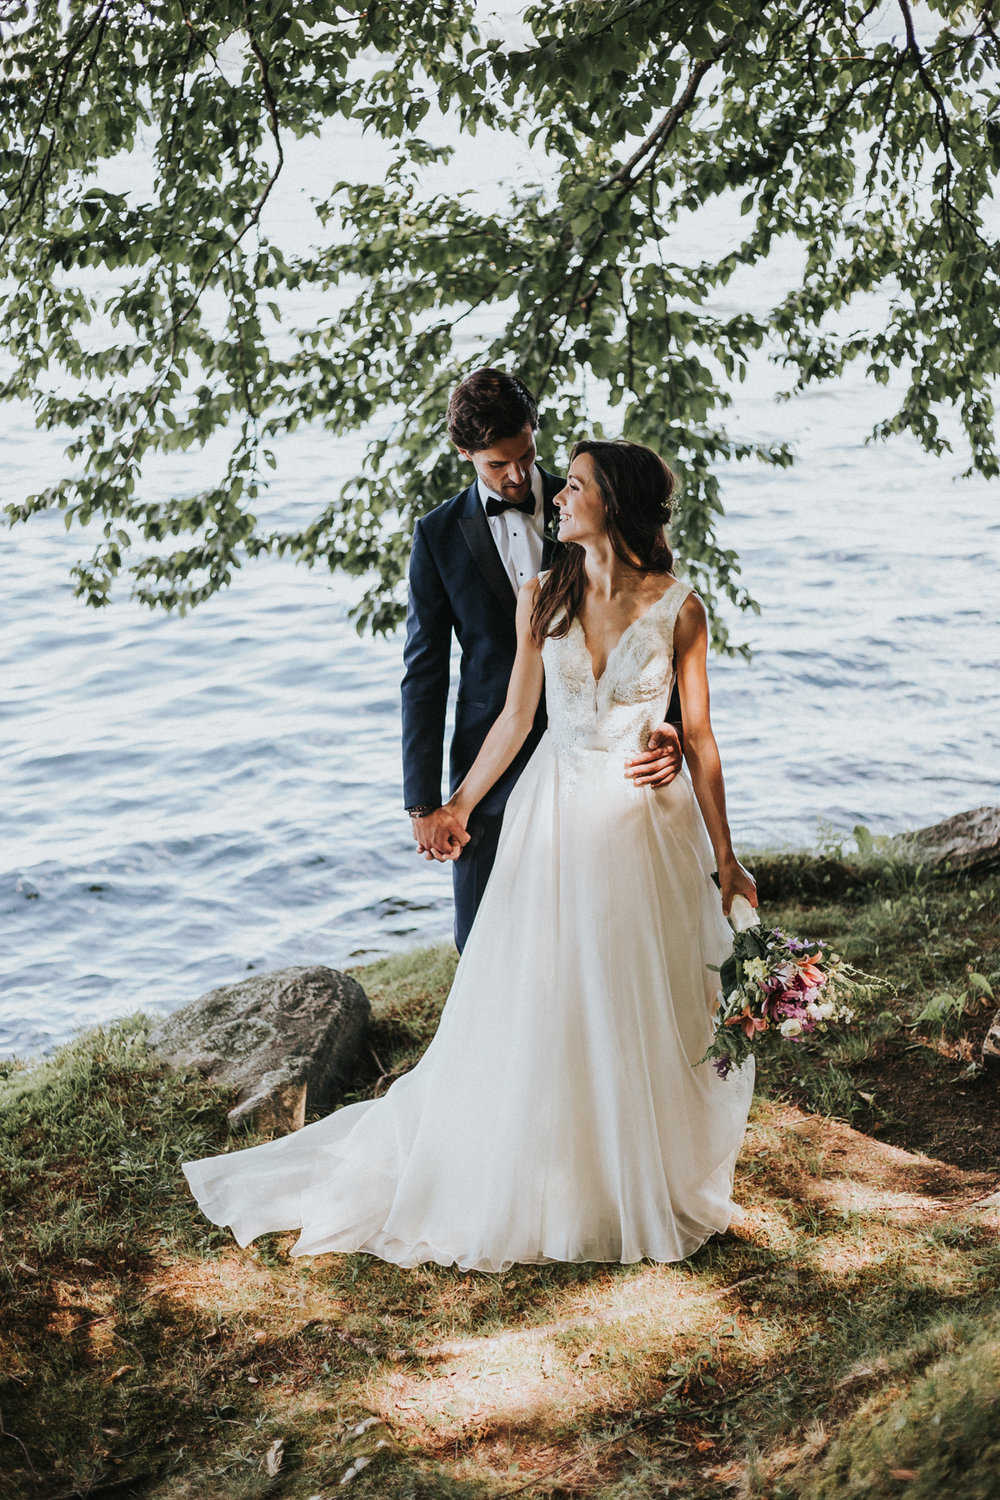 Bride and groom lakeside at Muskoka wedding by the lake